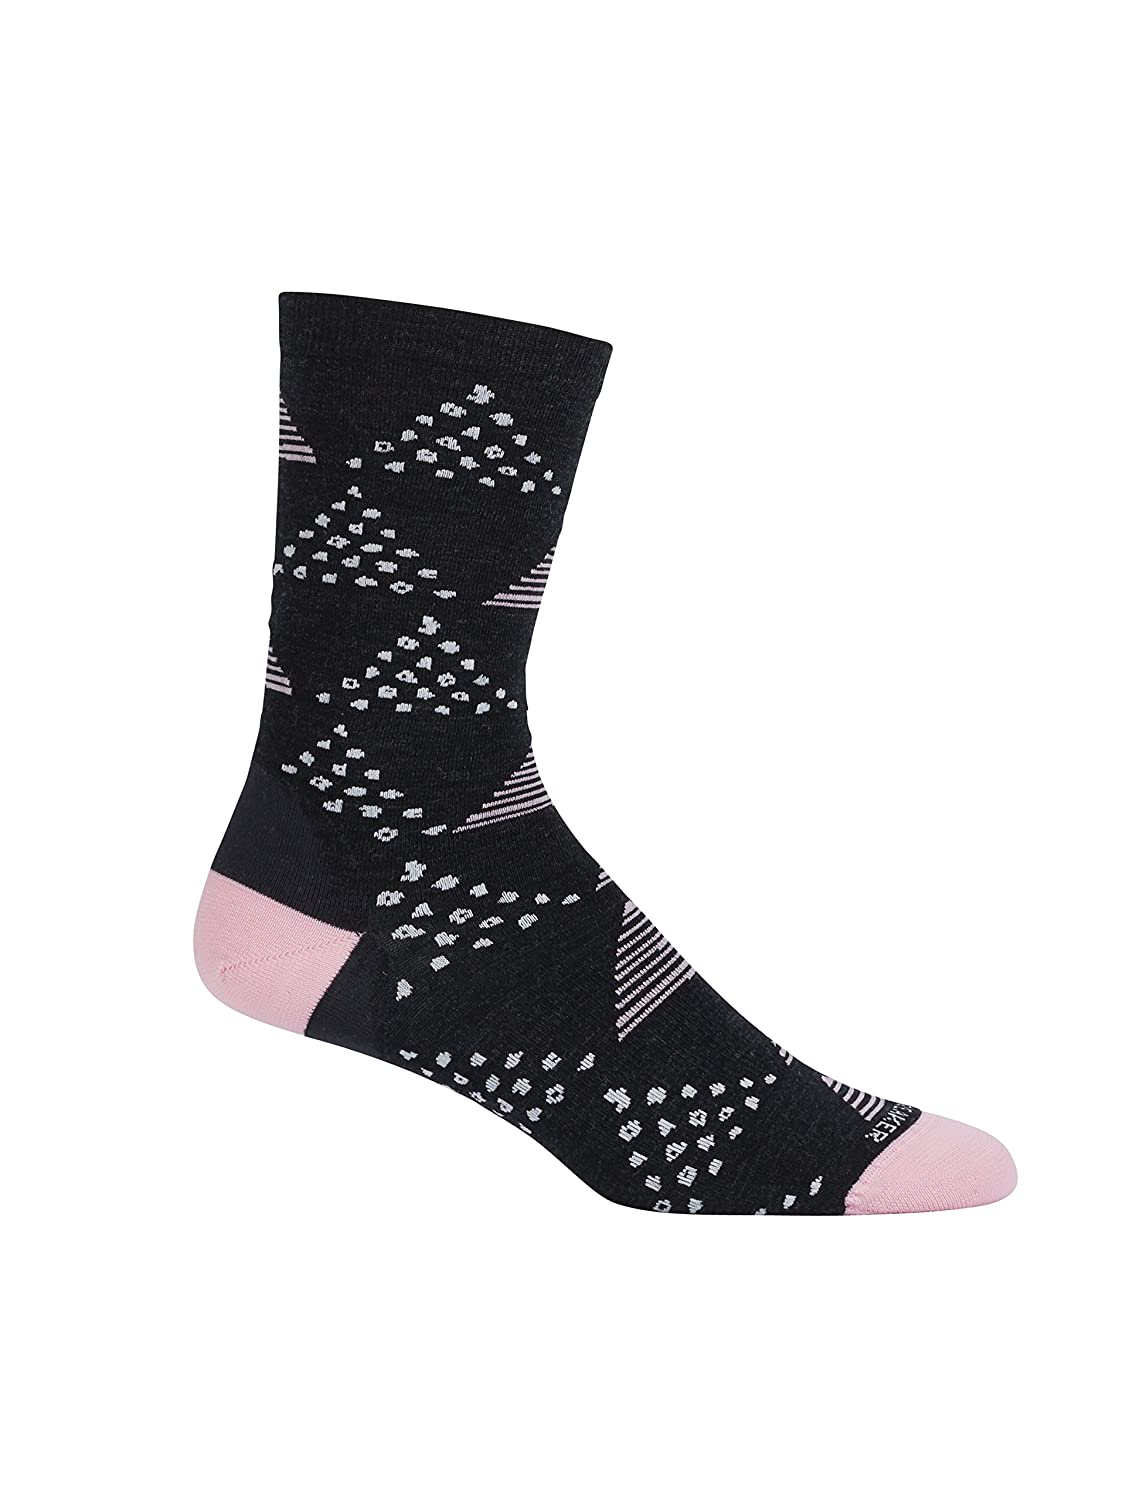 Icebreaker Women's Lifestyle Ultra Light Crew Socks Dot and Dash Black/Teardrop One Size IBN313